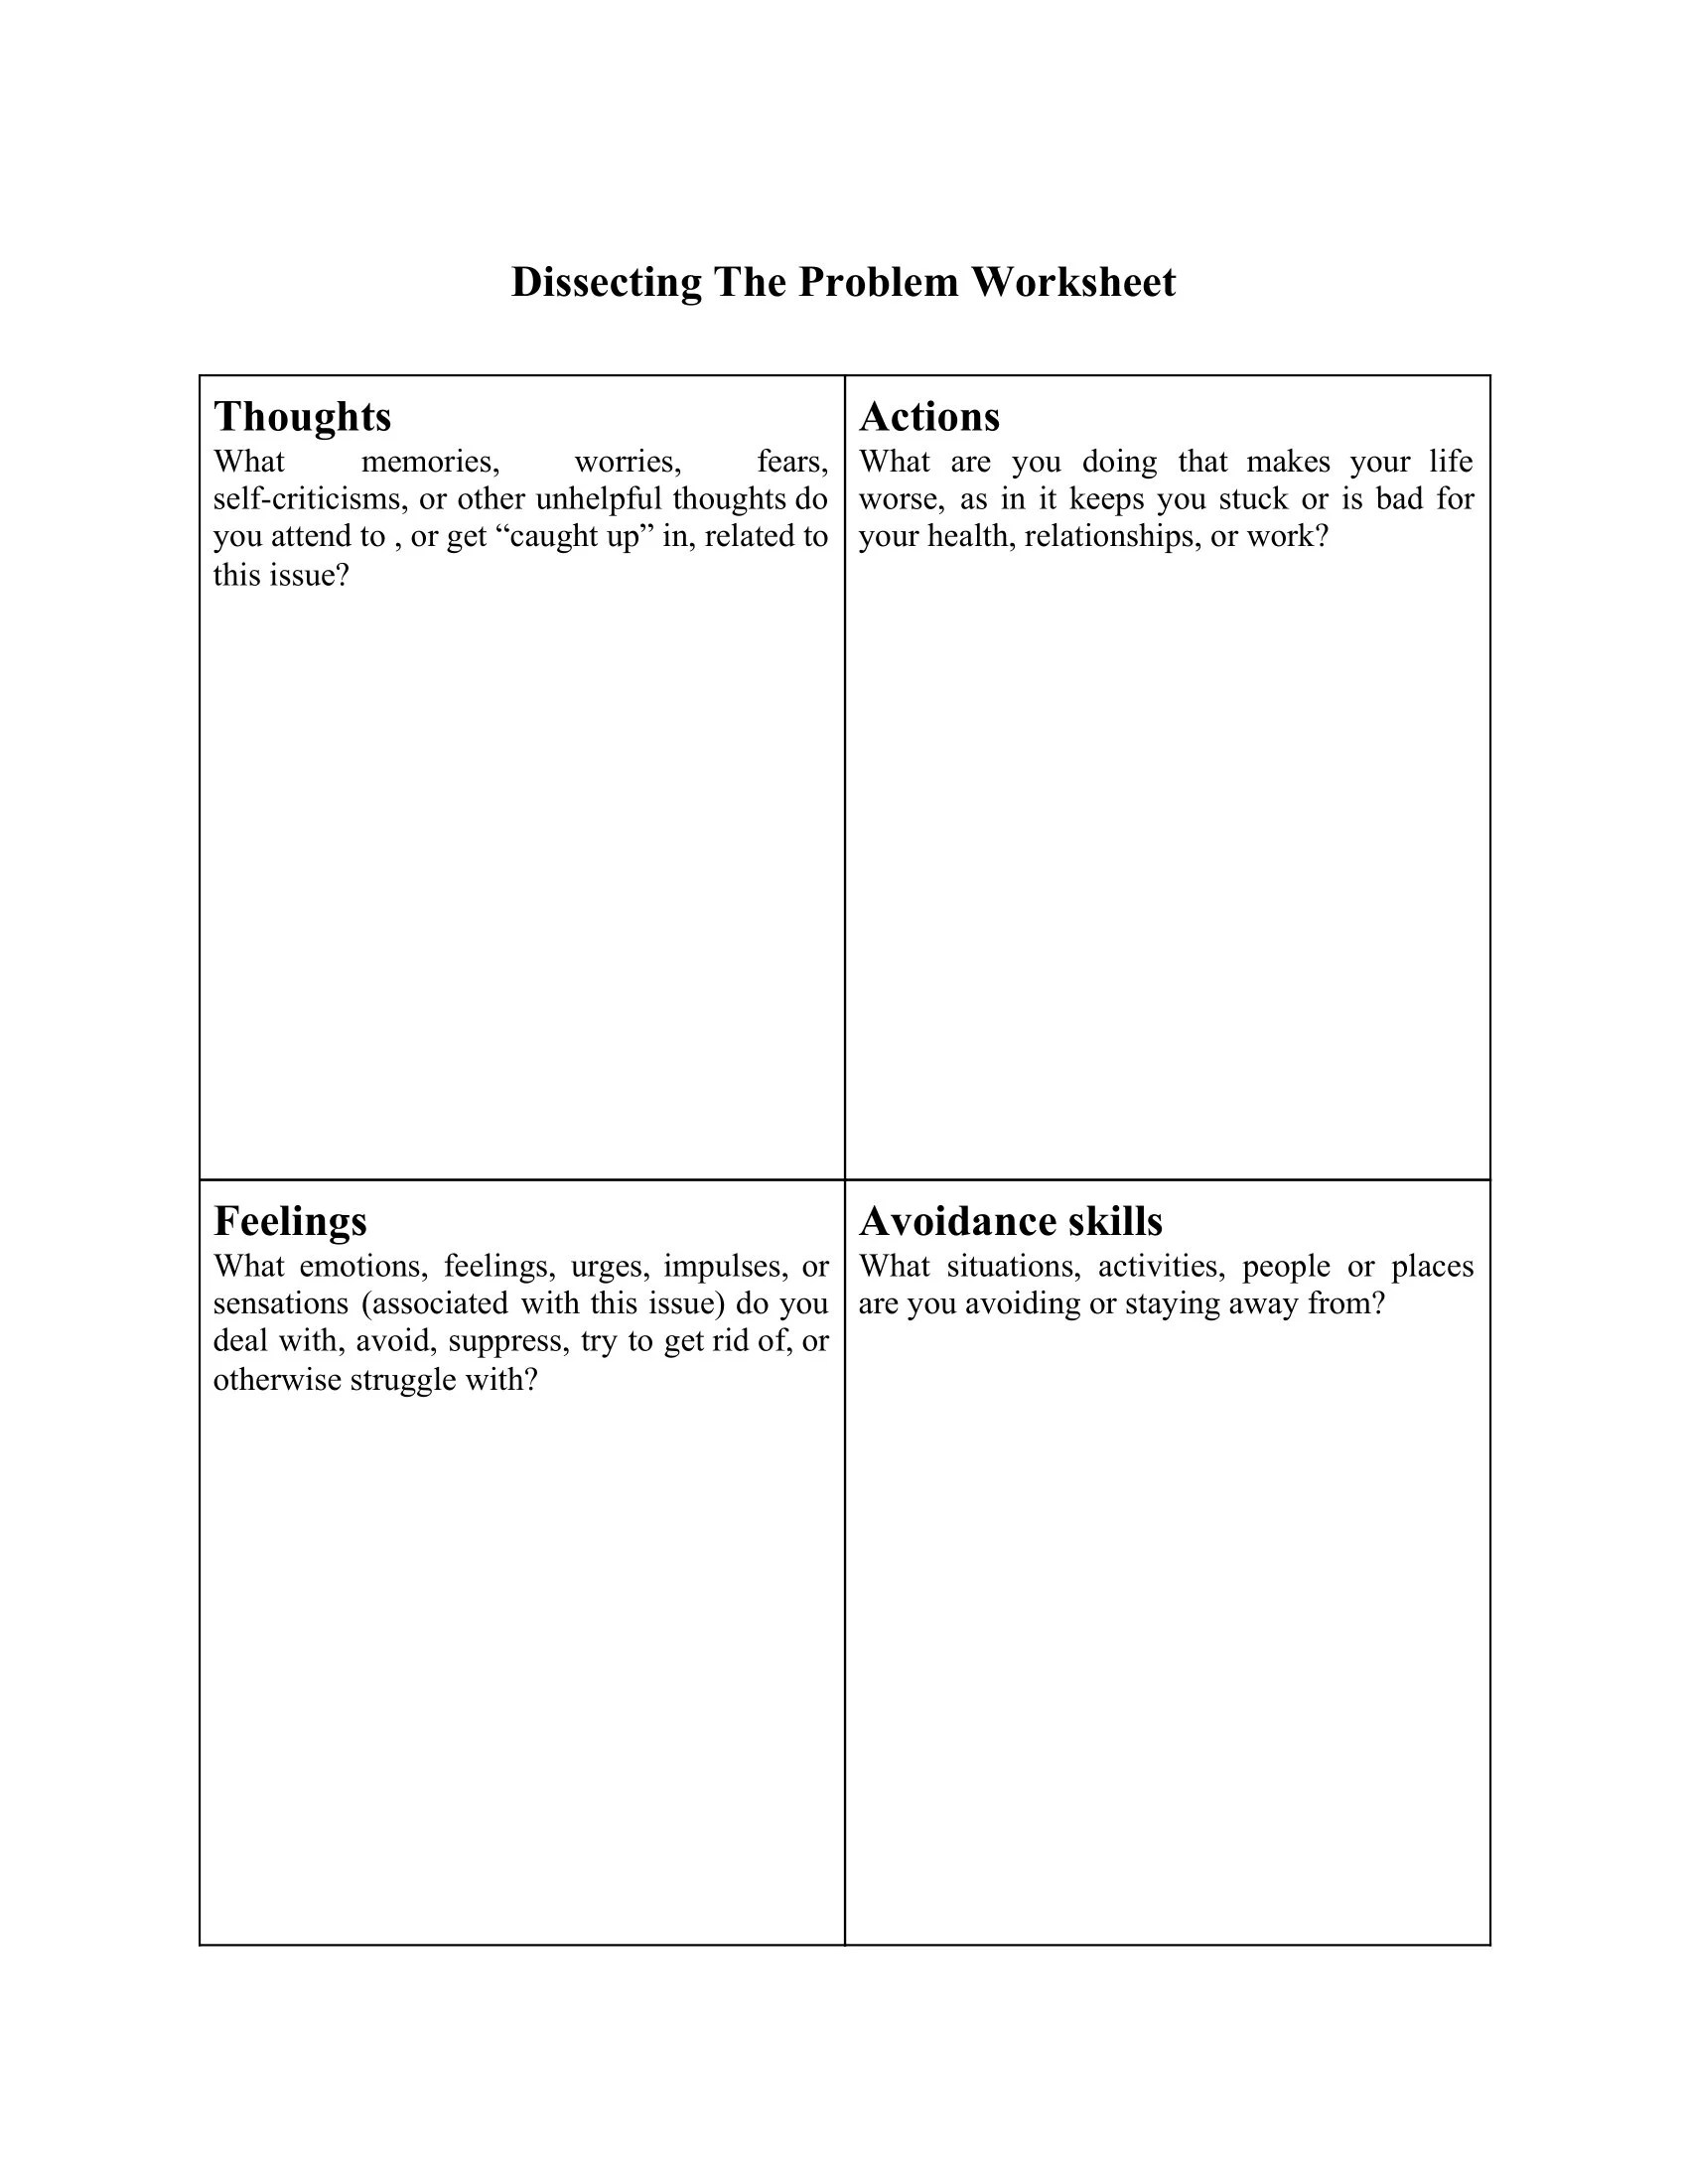 Dissecting The Problem Worksheet